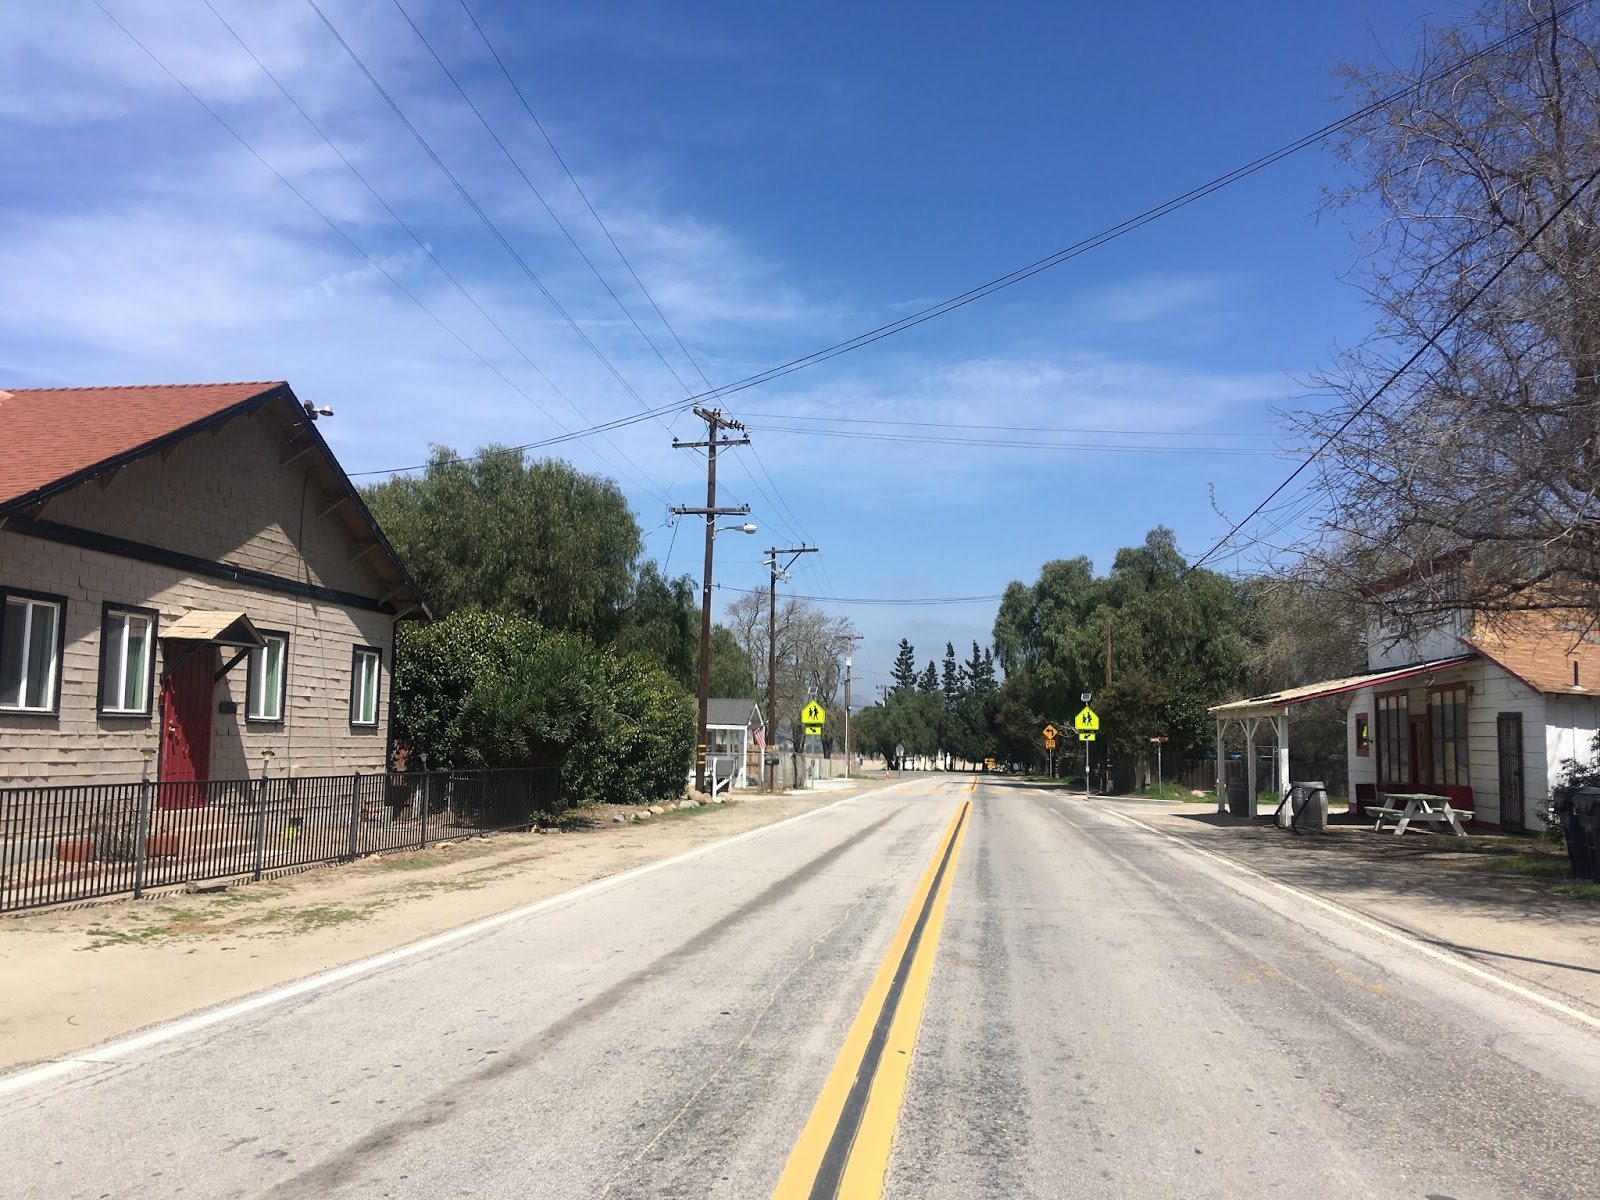 after taking cat canyon road to palmer road i took it north to sisquoc on foxen canyon road which was once the eastern terminus for california state route